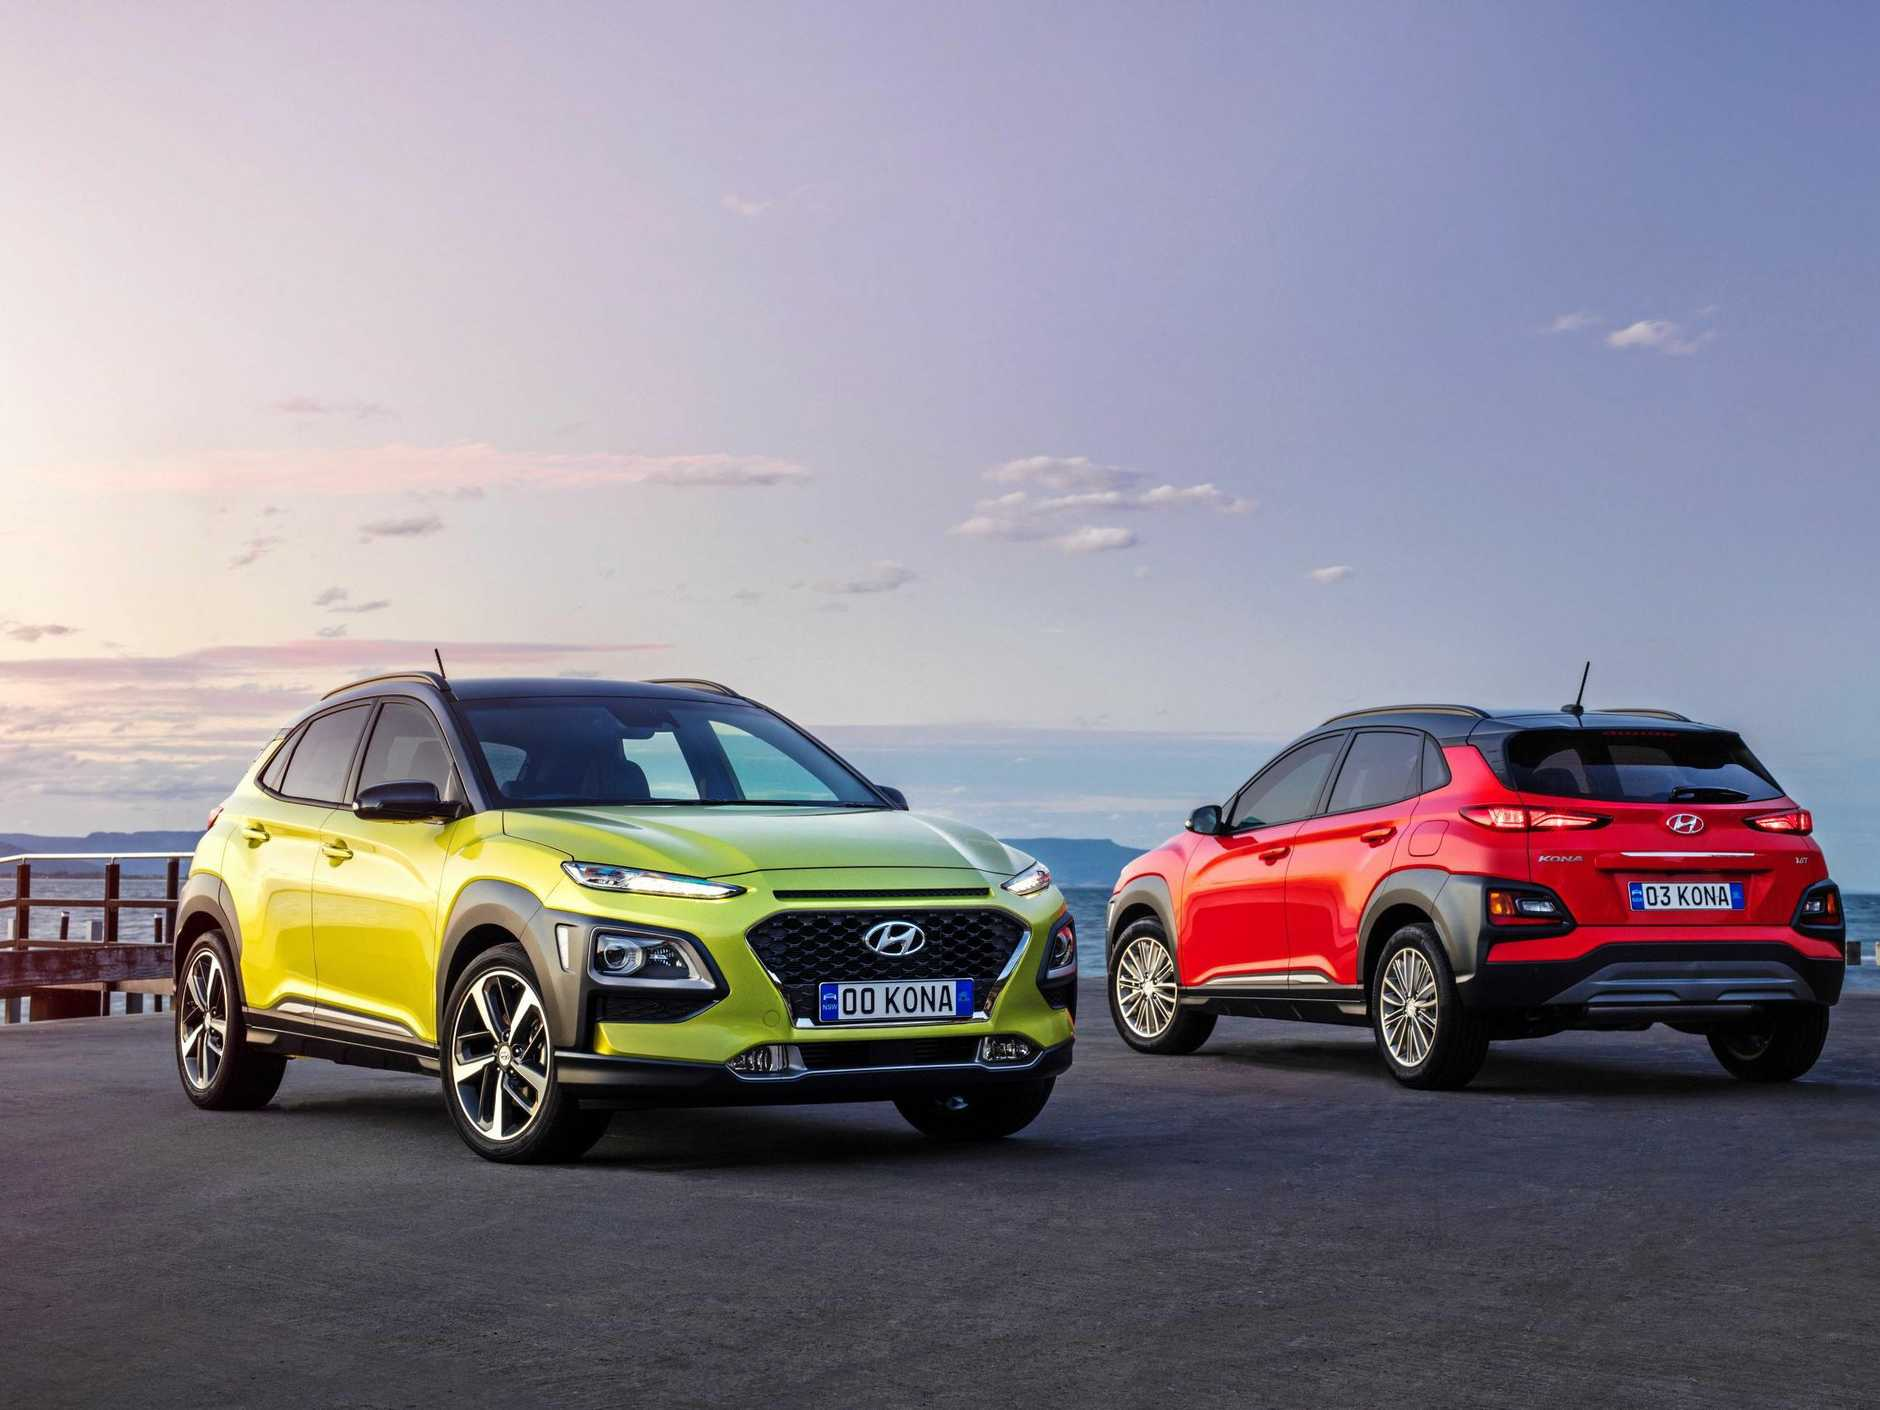 IT'S ARRIVED: The Hyundai Kona has just arrived in dealerships.